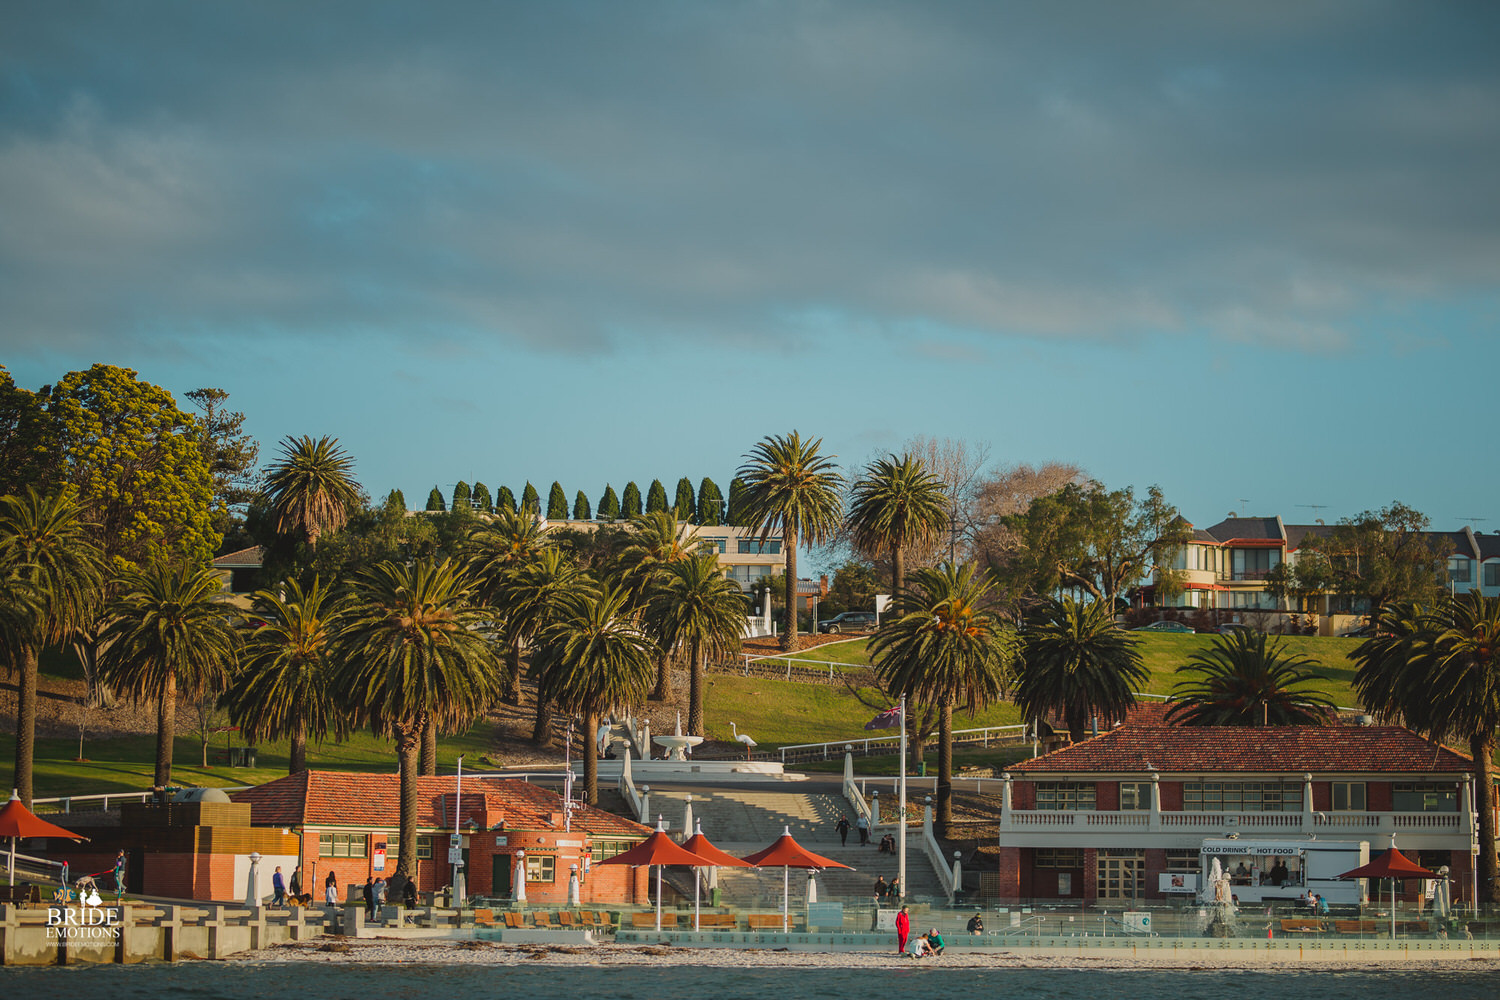 Geelong is a city southwest of Melbourne, Australia.